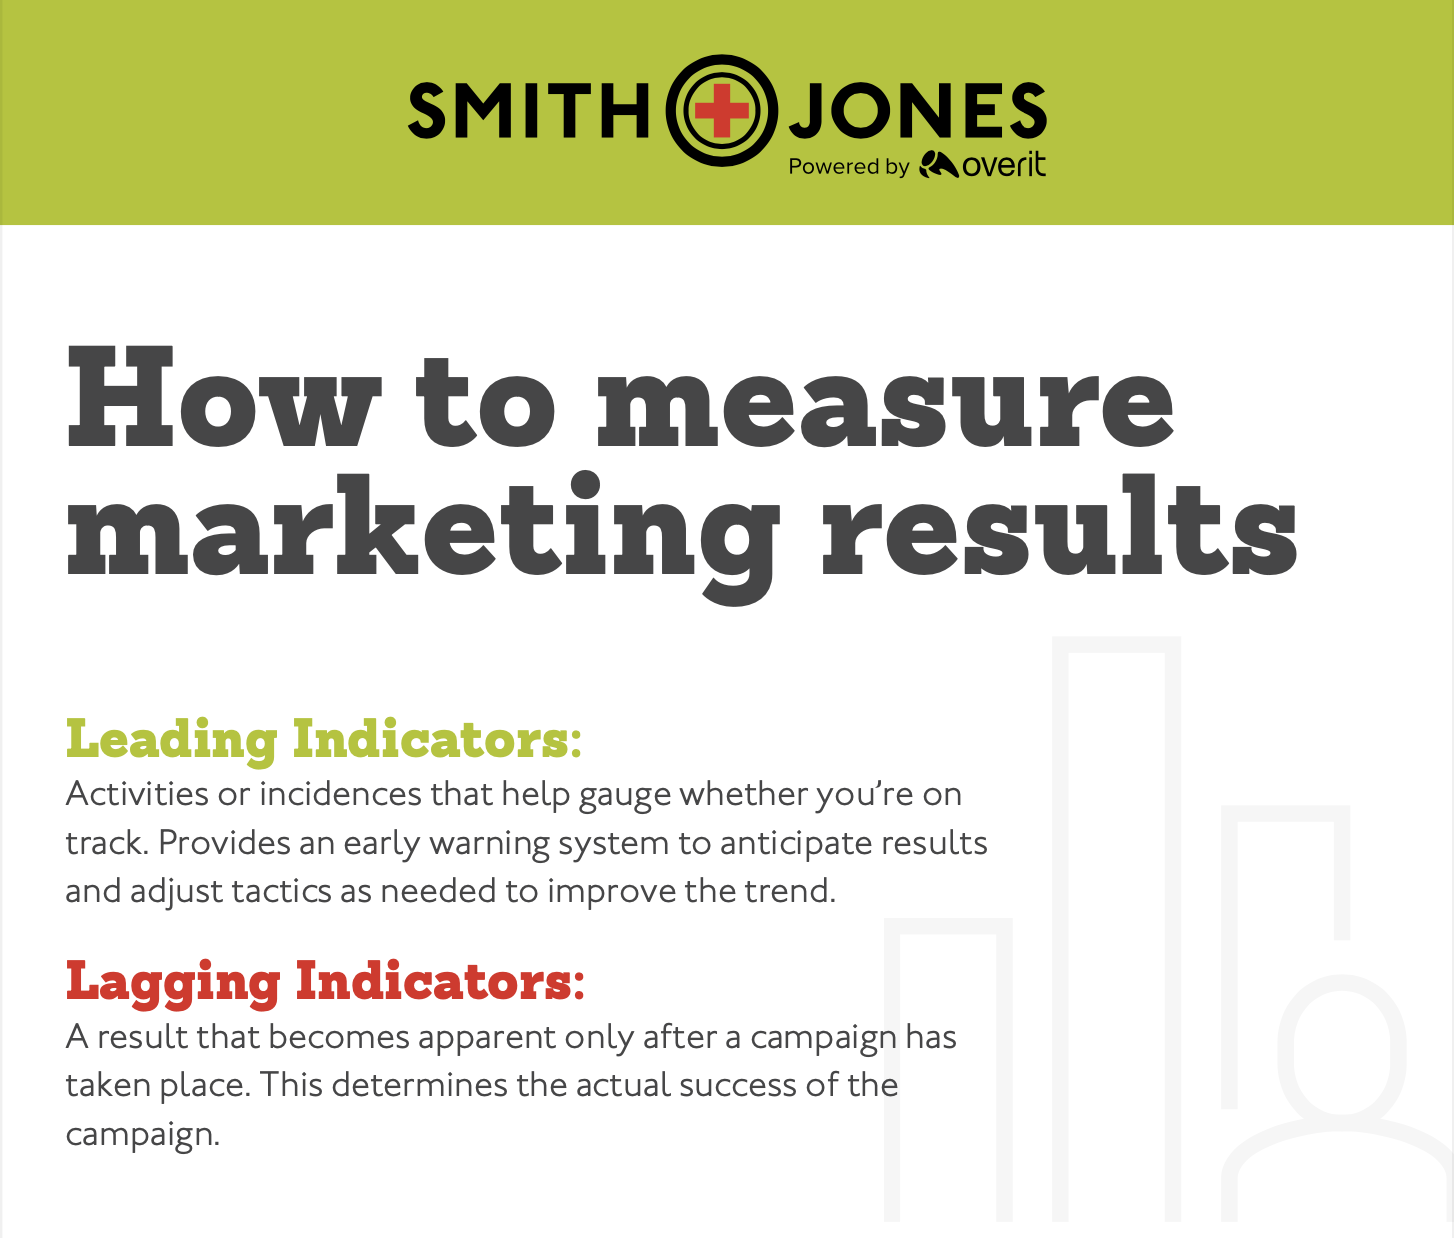 How to measure marketing results infographic